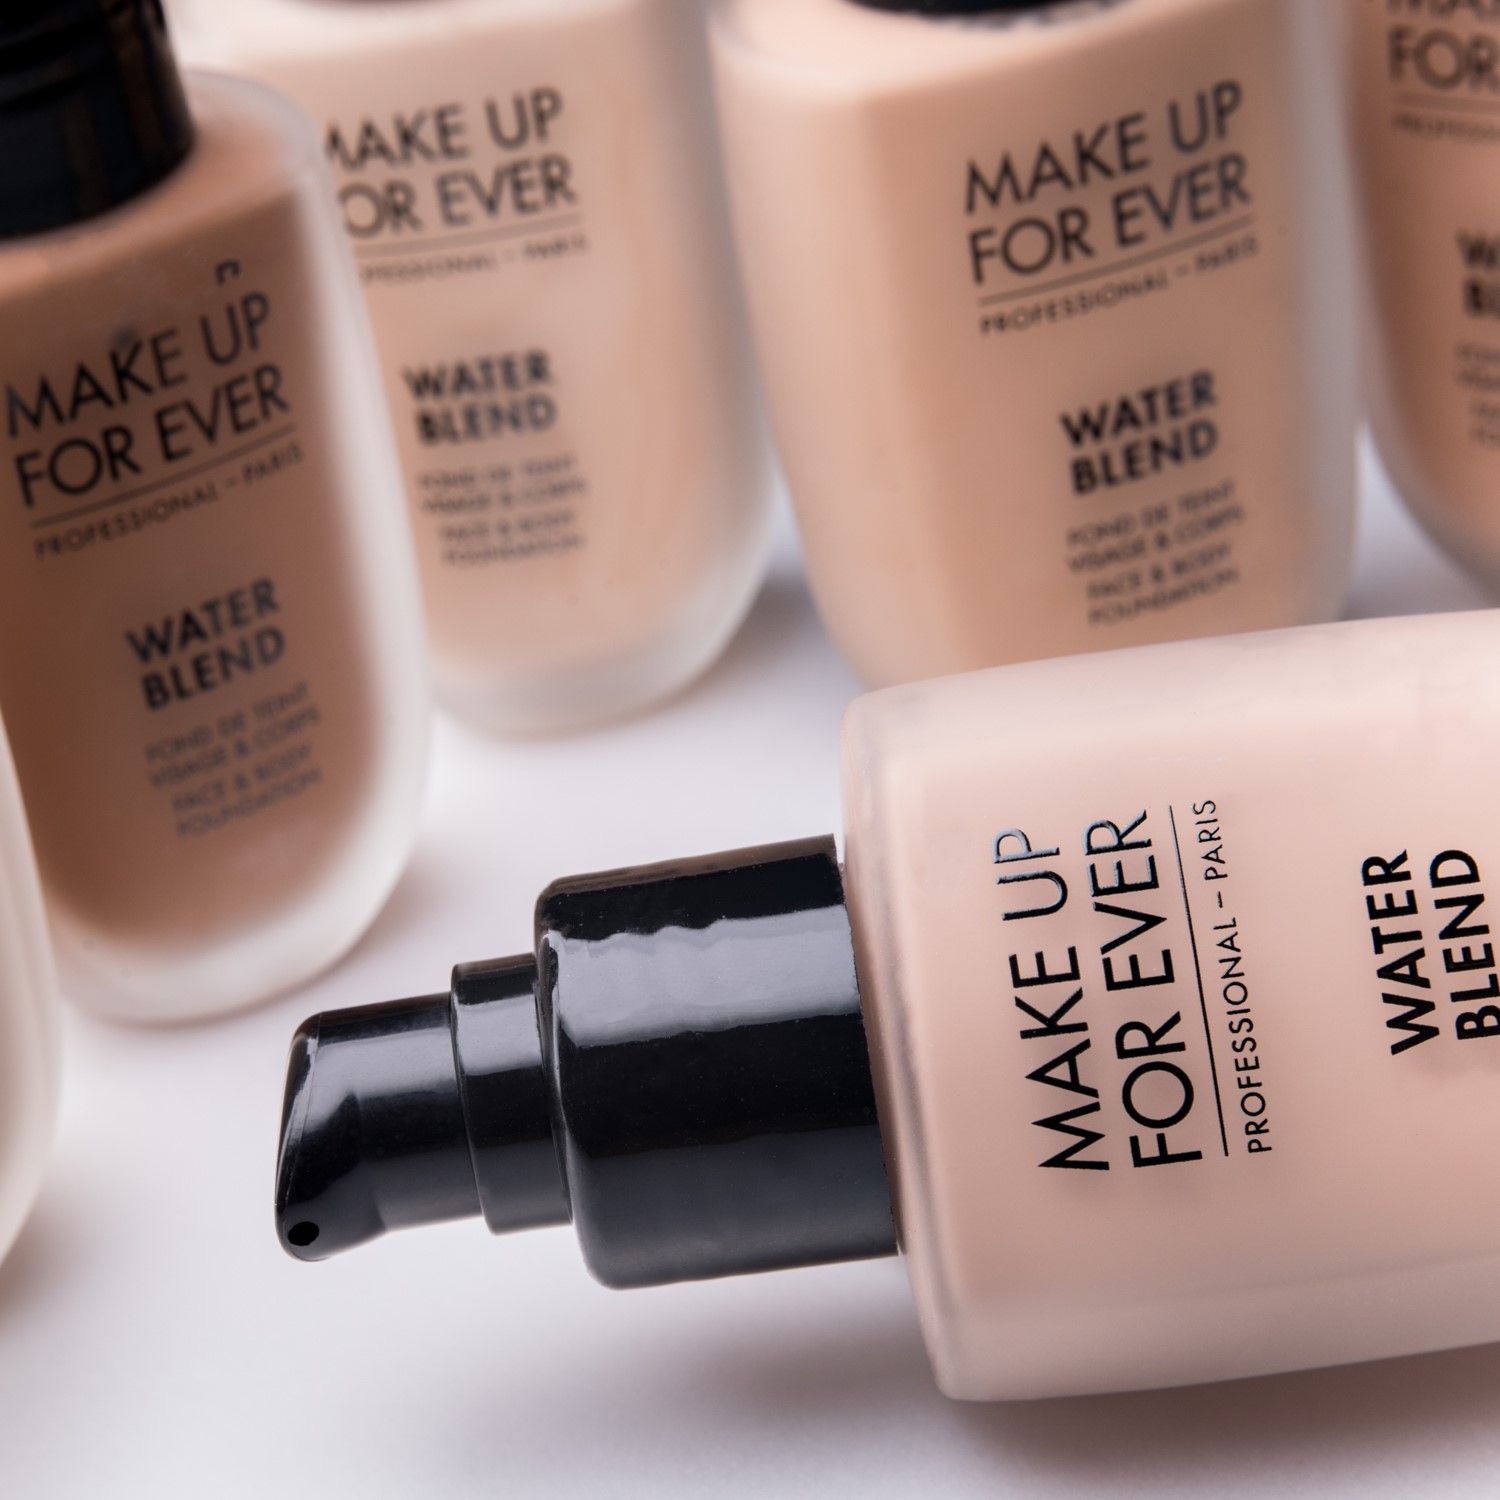 Waterblend Gives A Fresh Dewy Glow To The Skin With Its 80 Water Foundation That Feels So Lightweight With Images Forever Cosmetics Best At Home Facial Dewy Foundation